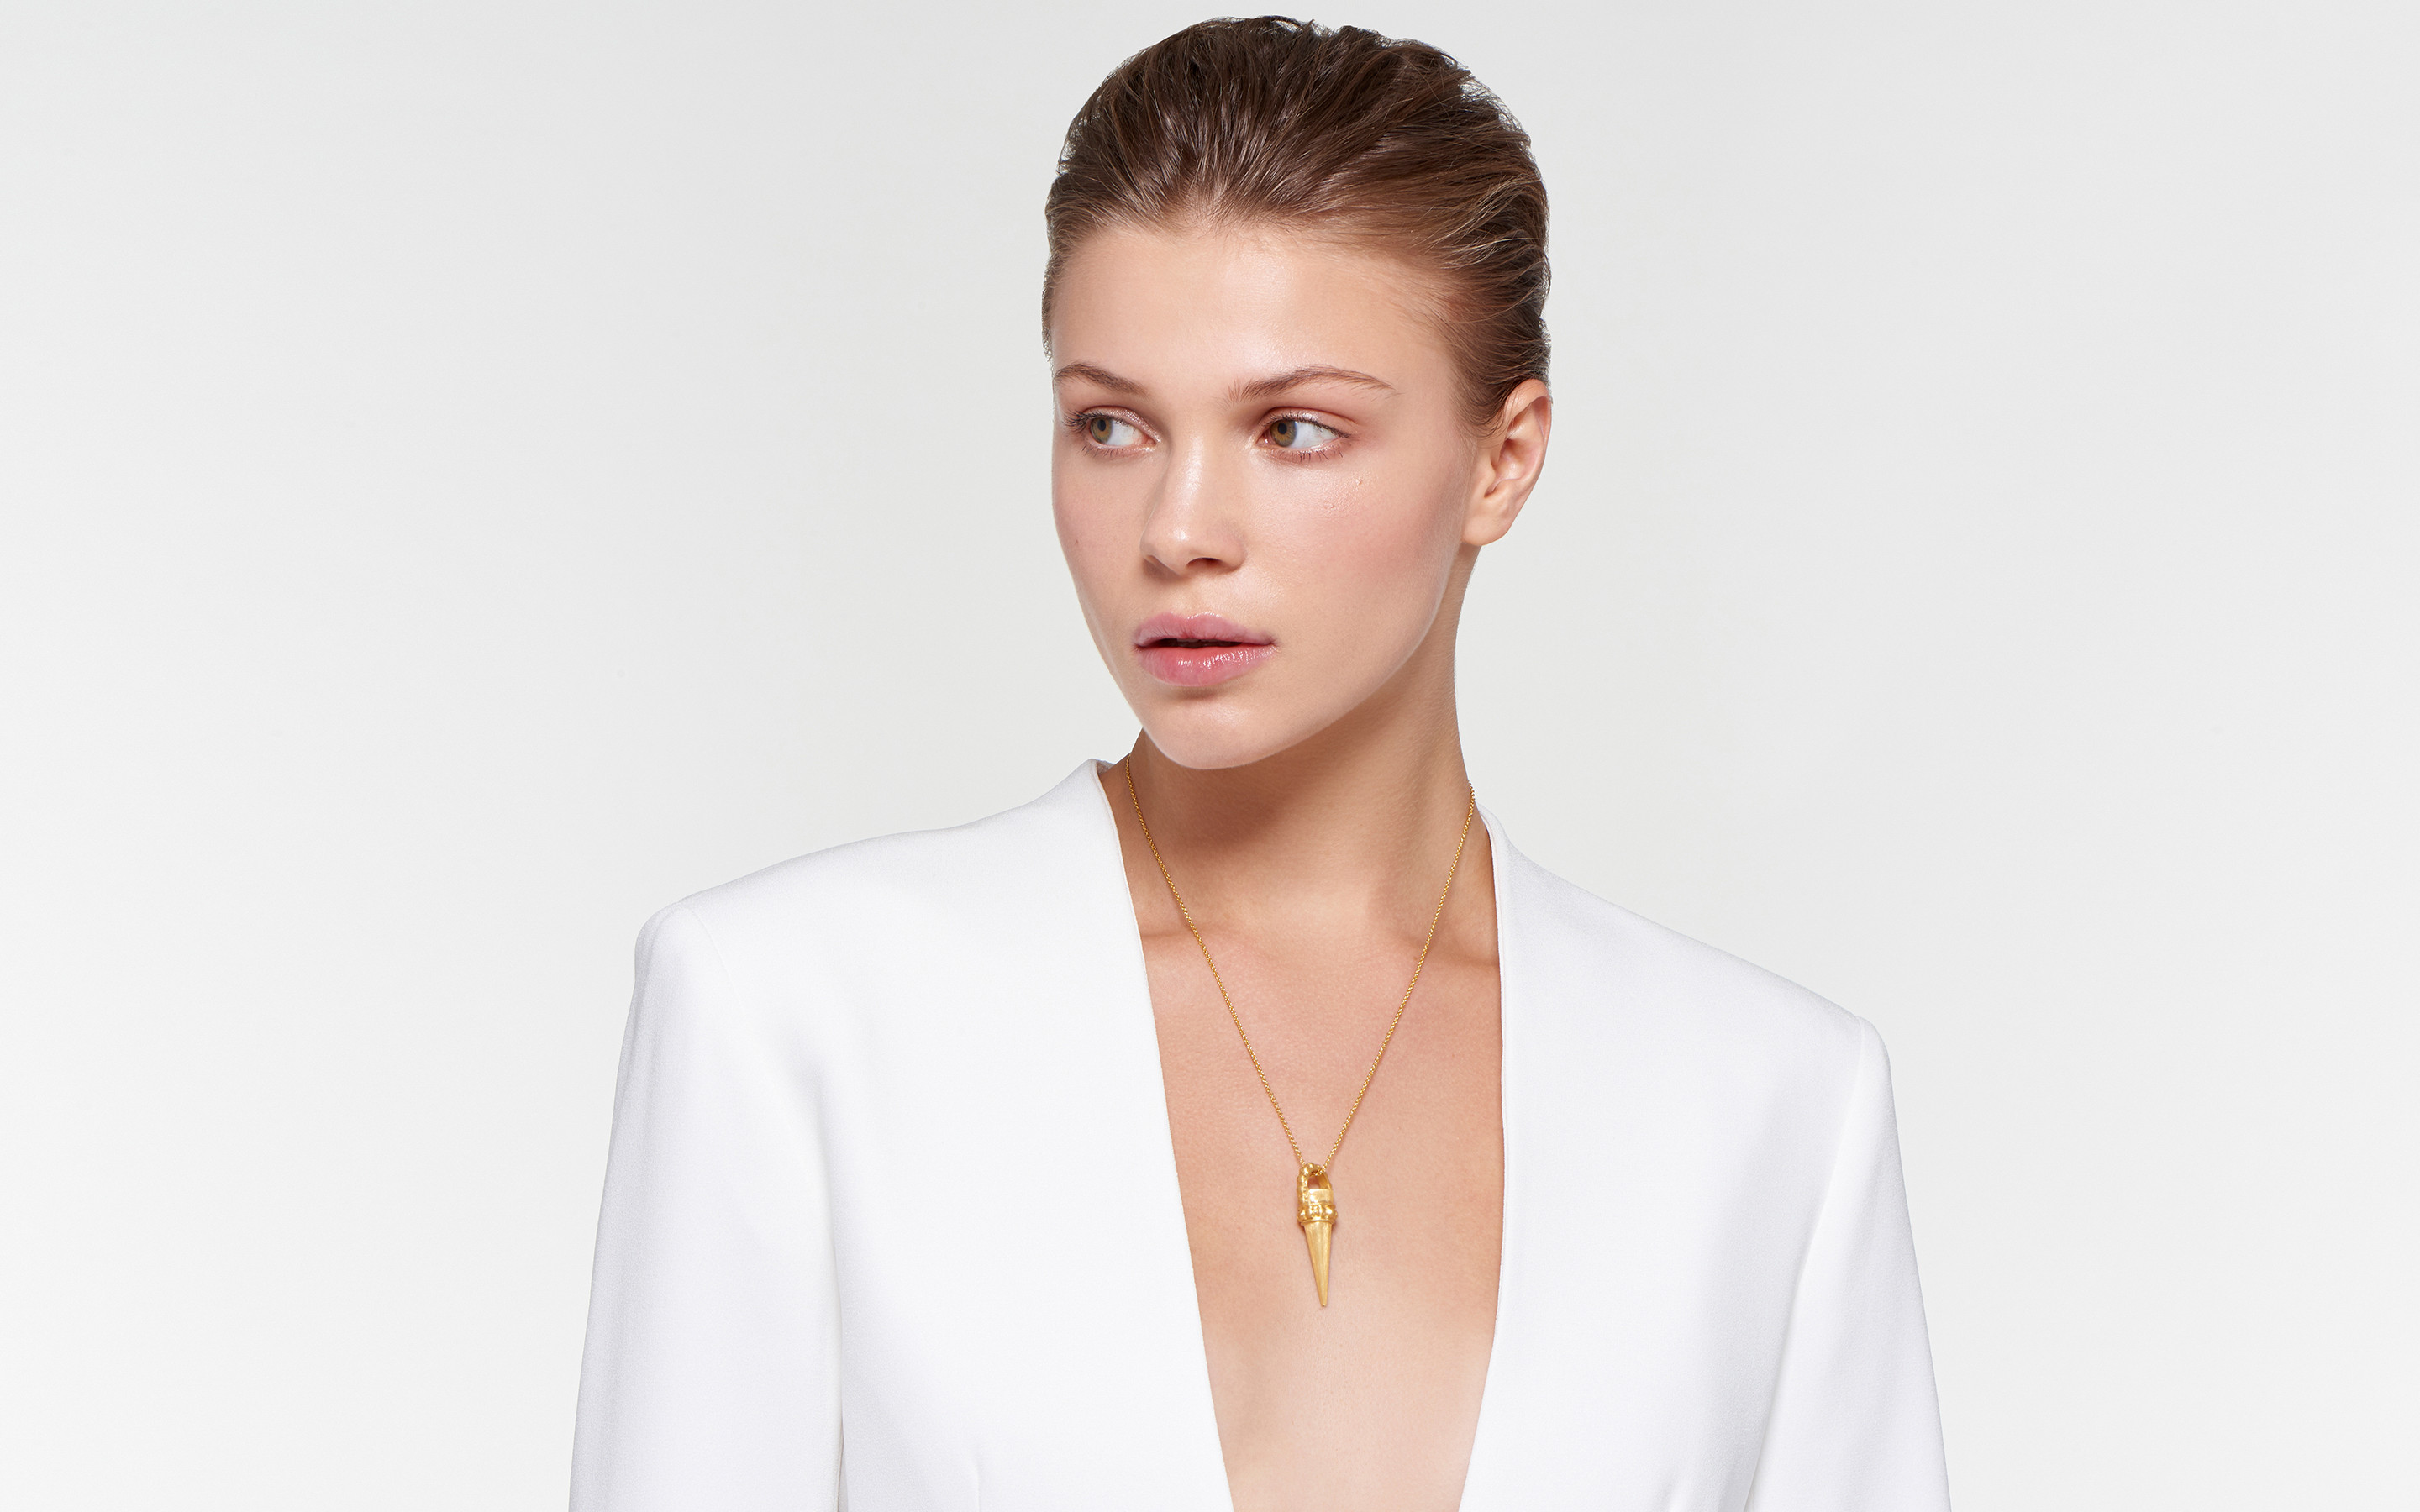 stylish model wearing 22 karat gold necklace with avant garde cone pendant in satin finish